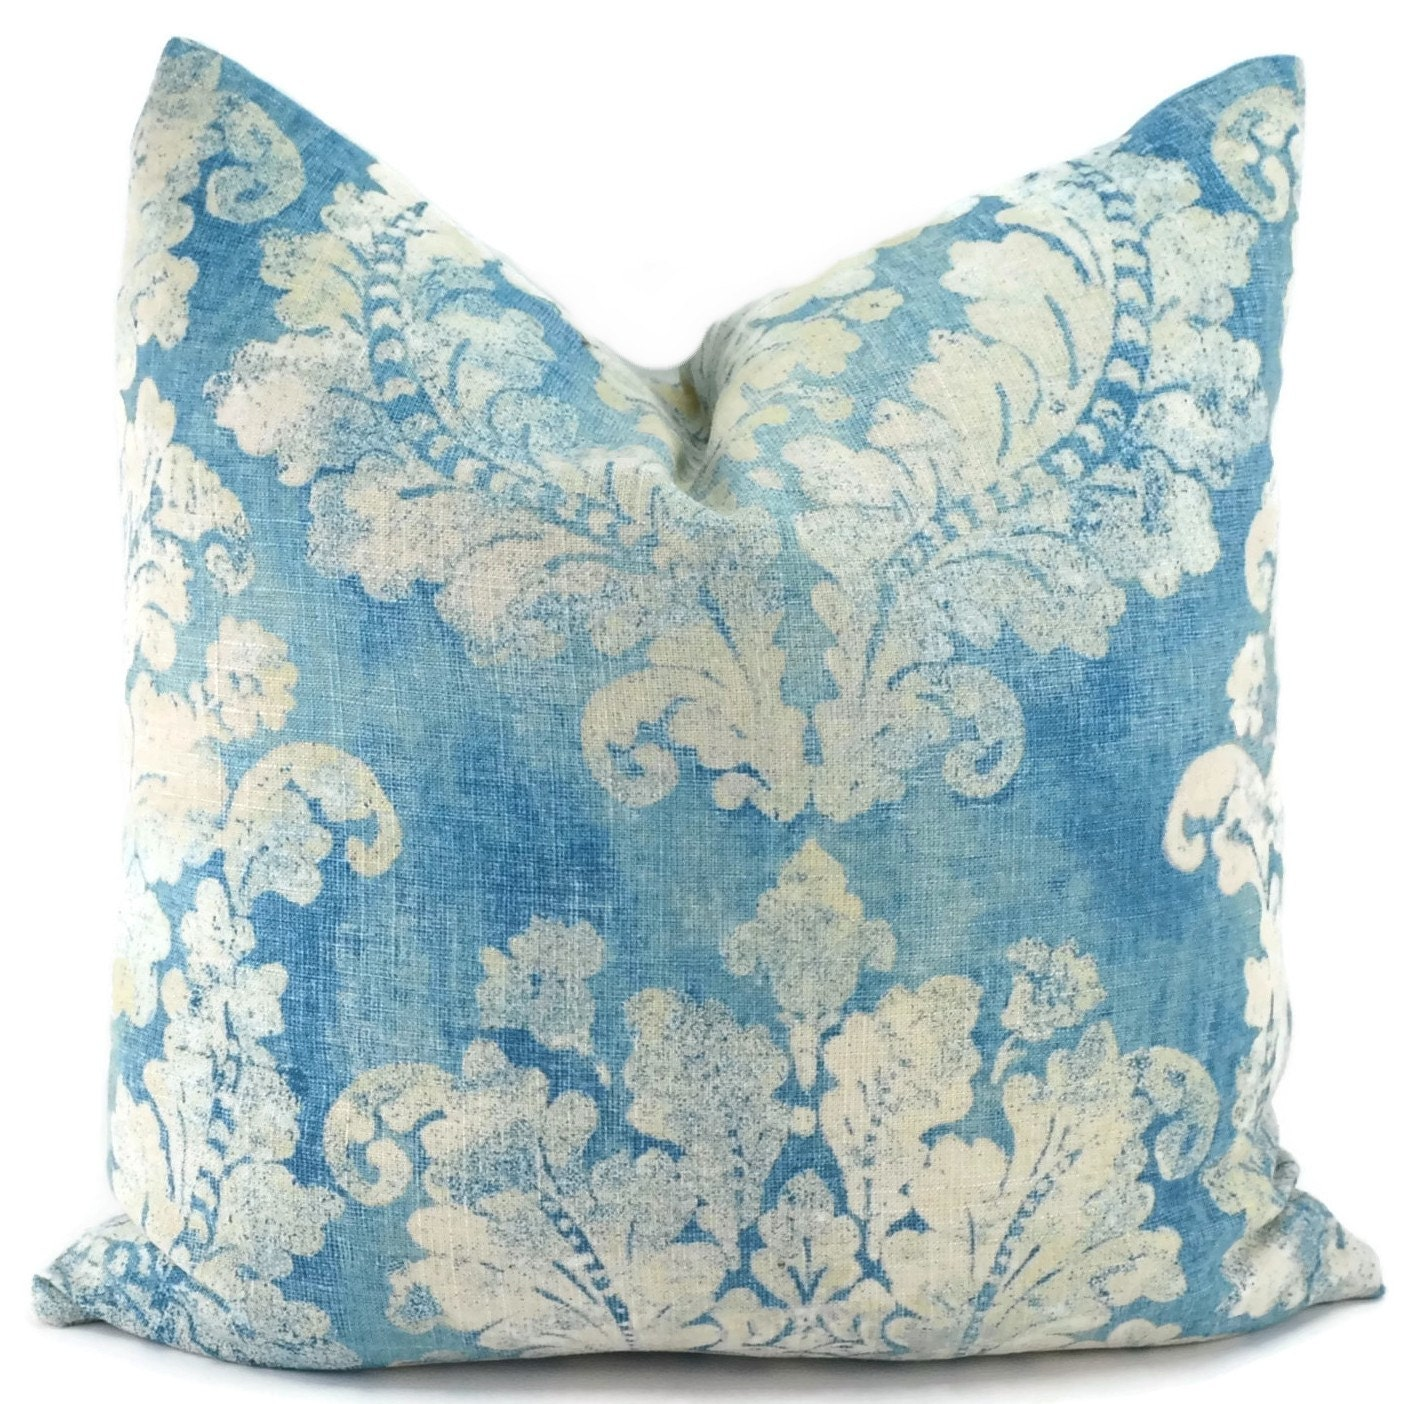 Large Throw Pillow Patterns : Throw Pillow Cover Blue & Oatmeal Large Leaf Damask Pattern